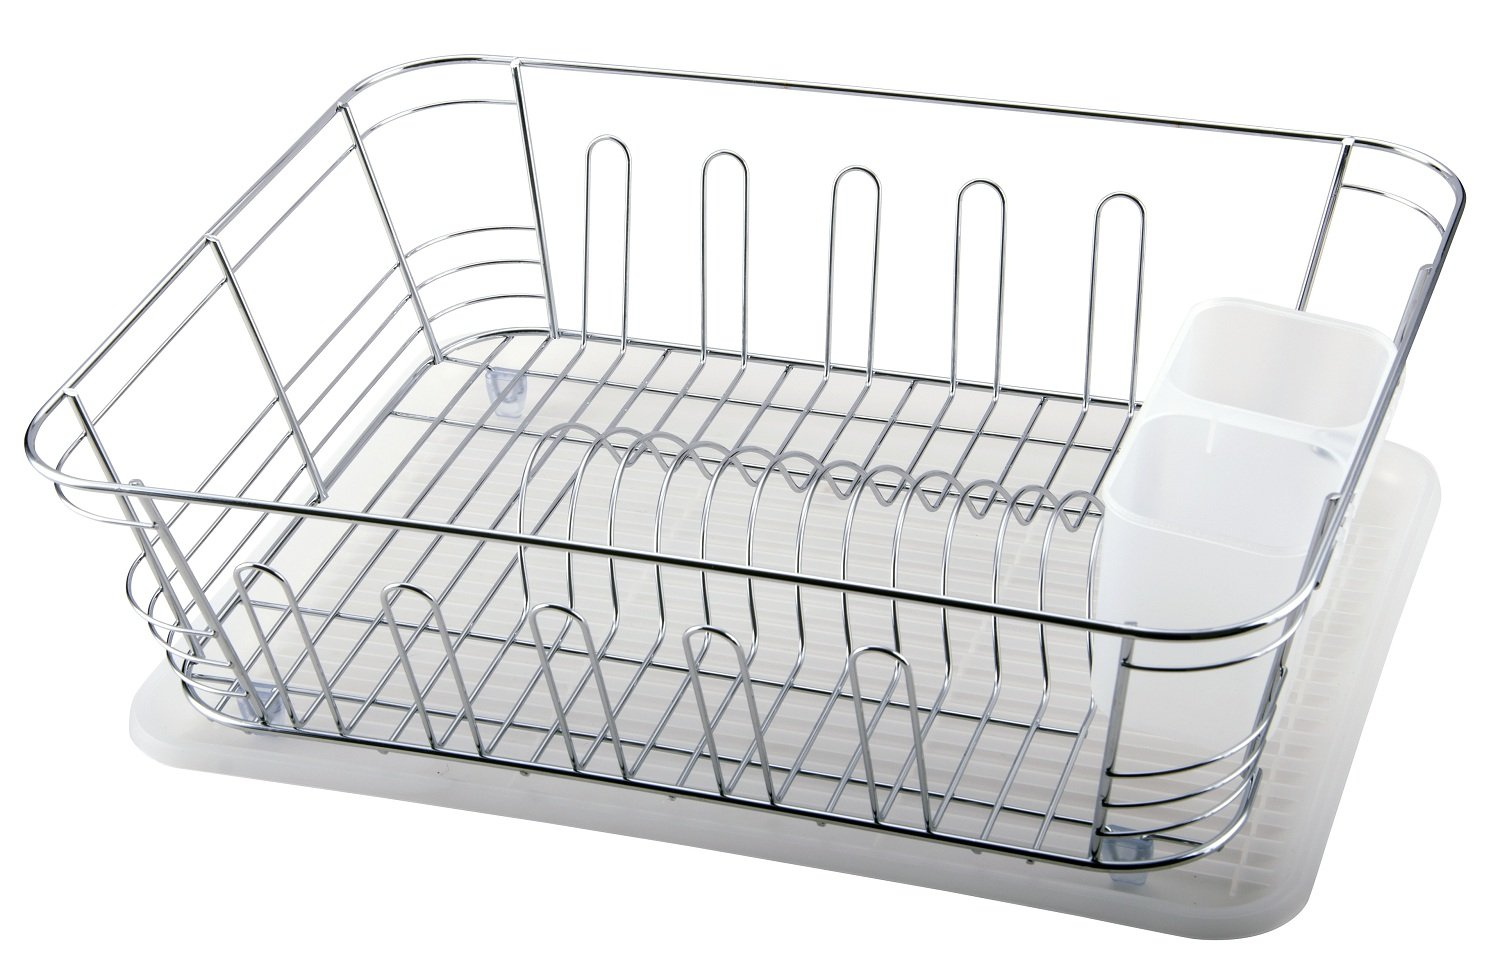 Superior Quality Chrome Plated Steel Kitchen Dish Rack with Utensil Holder